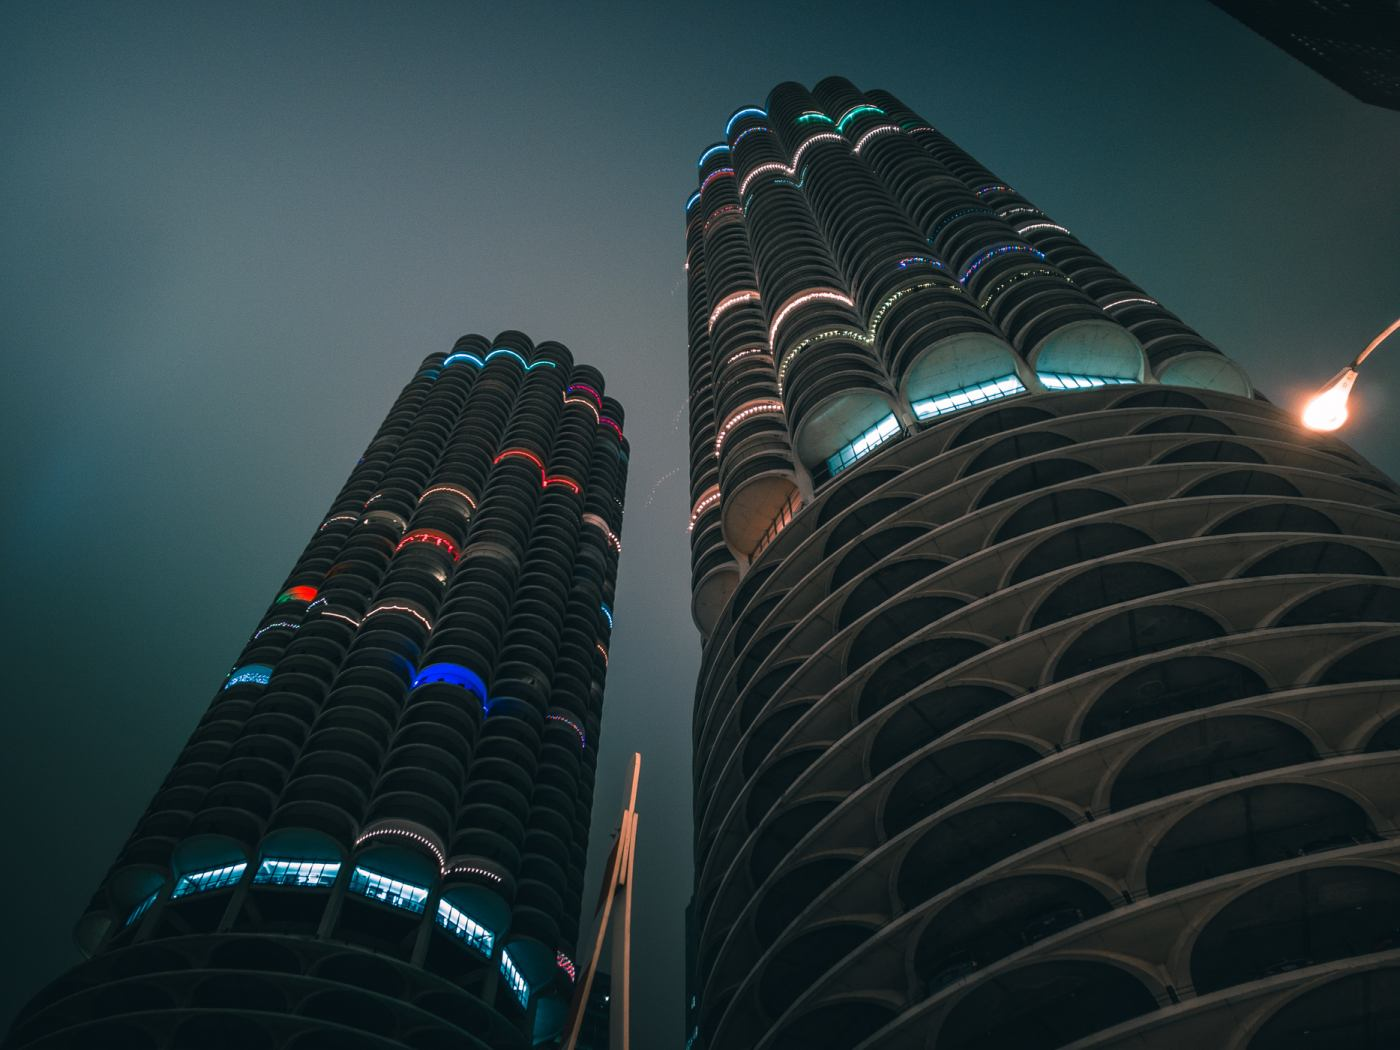 Marina City Towers, Chicago. ASUS ZenFone 4 Pro. 20s, f/1.7, ISO 25